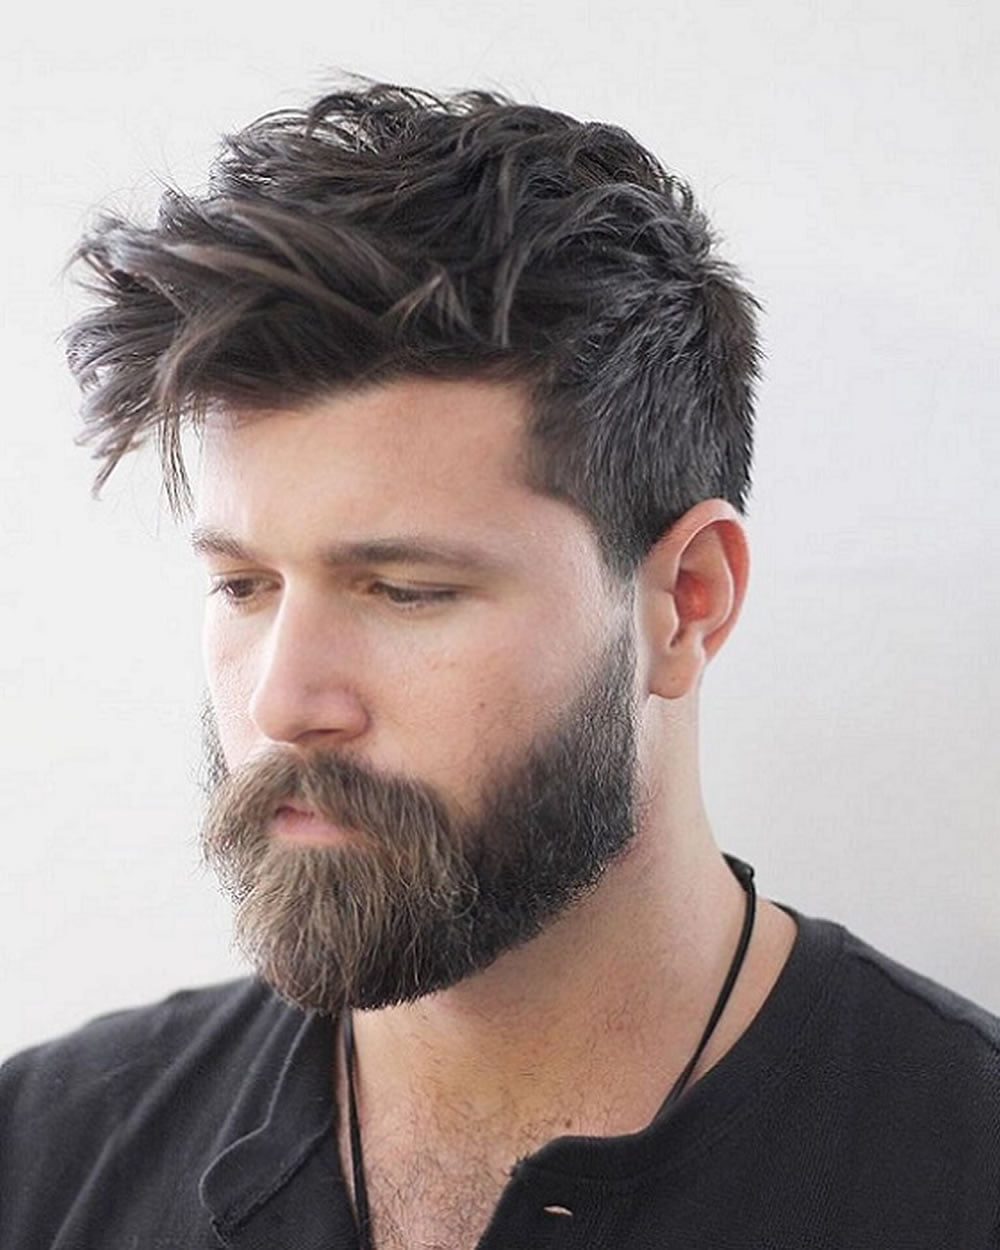 styles for mens hair the best 2018 haircuts for amp hair color ideas hairstyles 6321